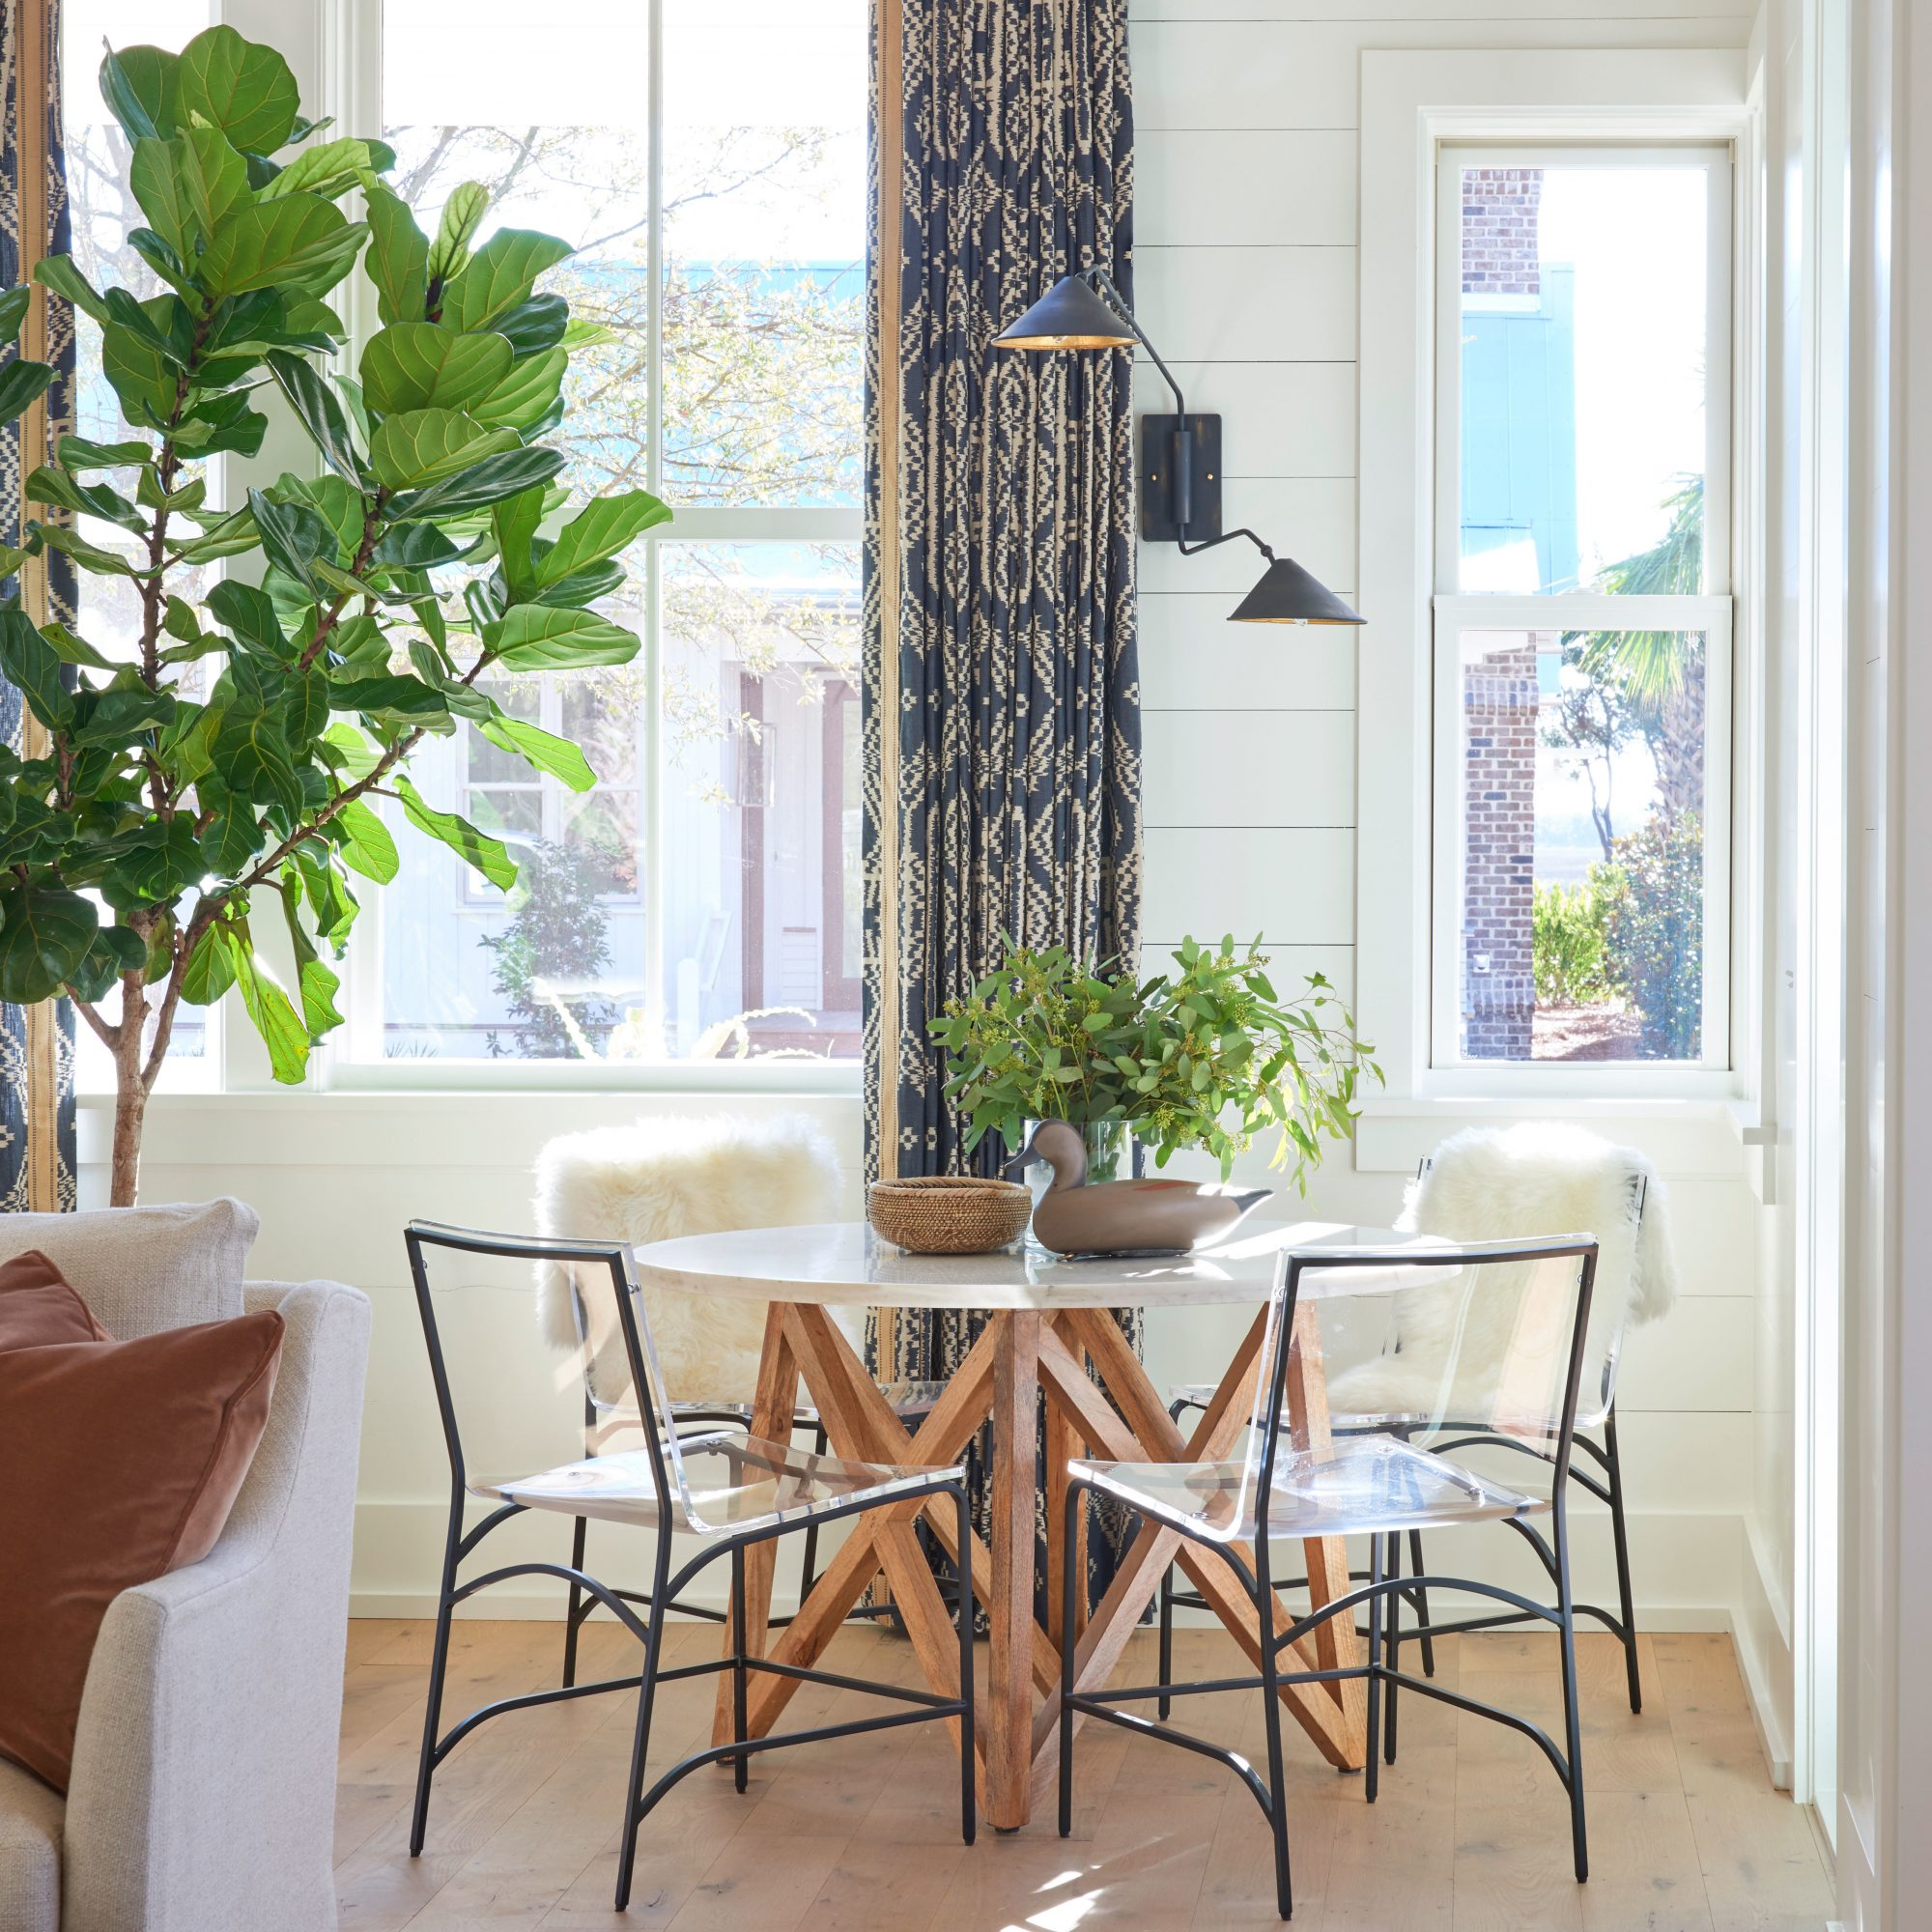 A contemporary breakfast nook table in a Lowcountry house.